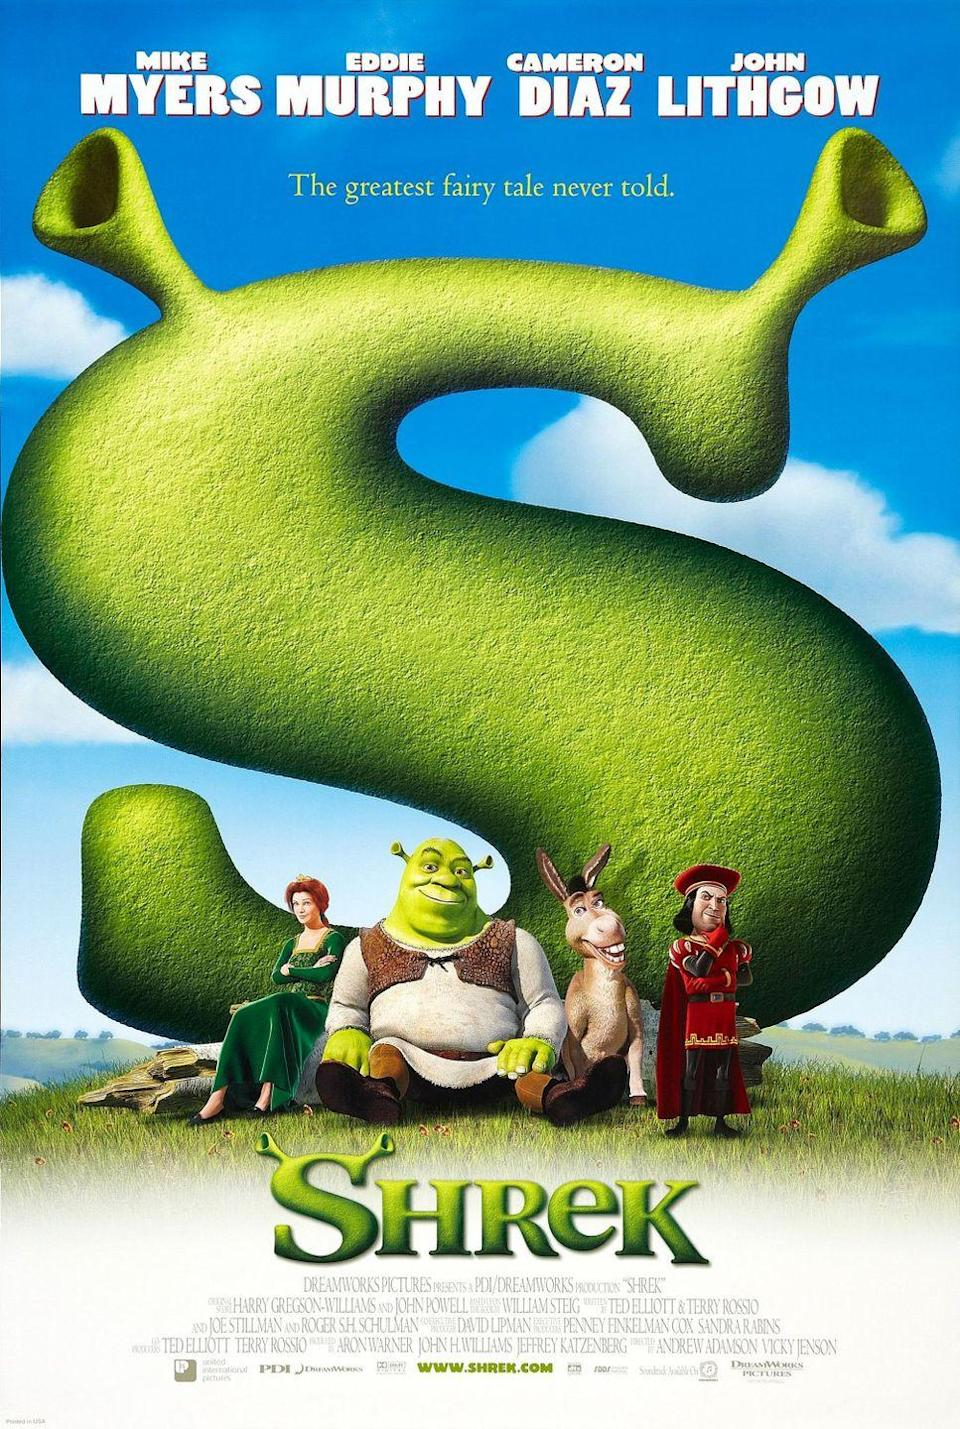 <p>Loosely based on the book Shrek! by William Steig, this runaway hit premiered on April 22, 2001 and fairy tales haven't been the same since. Who could have guessed that an Ogre (voiced by Mike Meyers), a donkey (voiced by Eddie Murphy) and a Princess (voiced by Cameron Diaz) would turn into an entire franchise? A new installment is rumored to be coming out next year. </p>